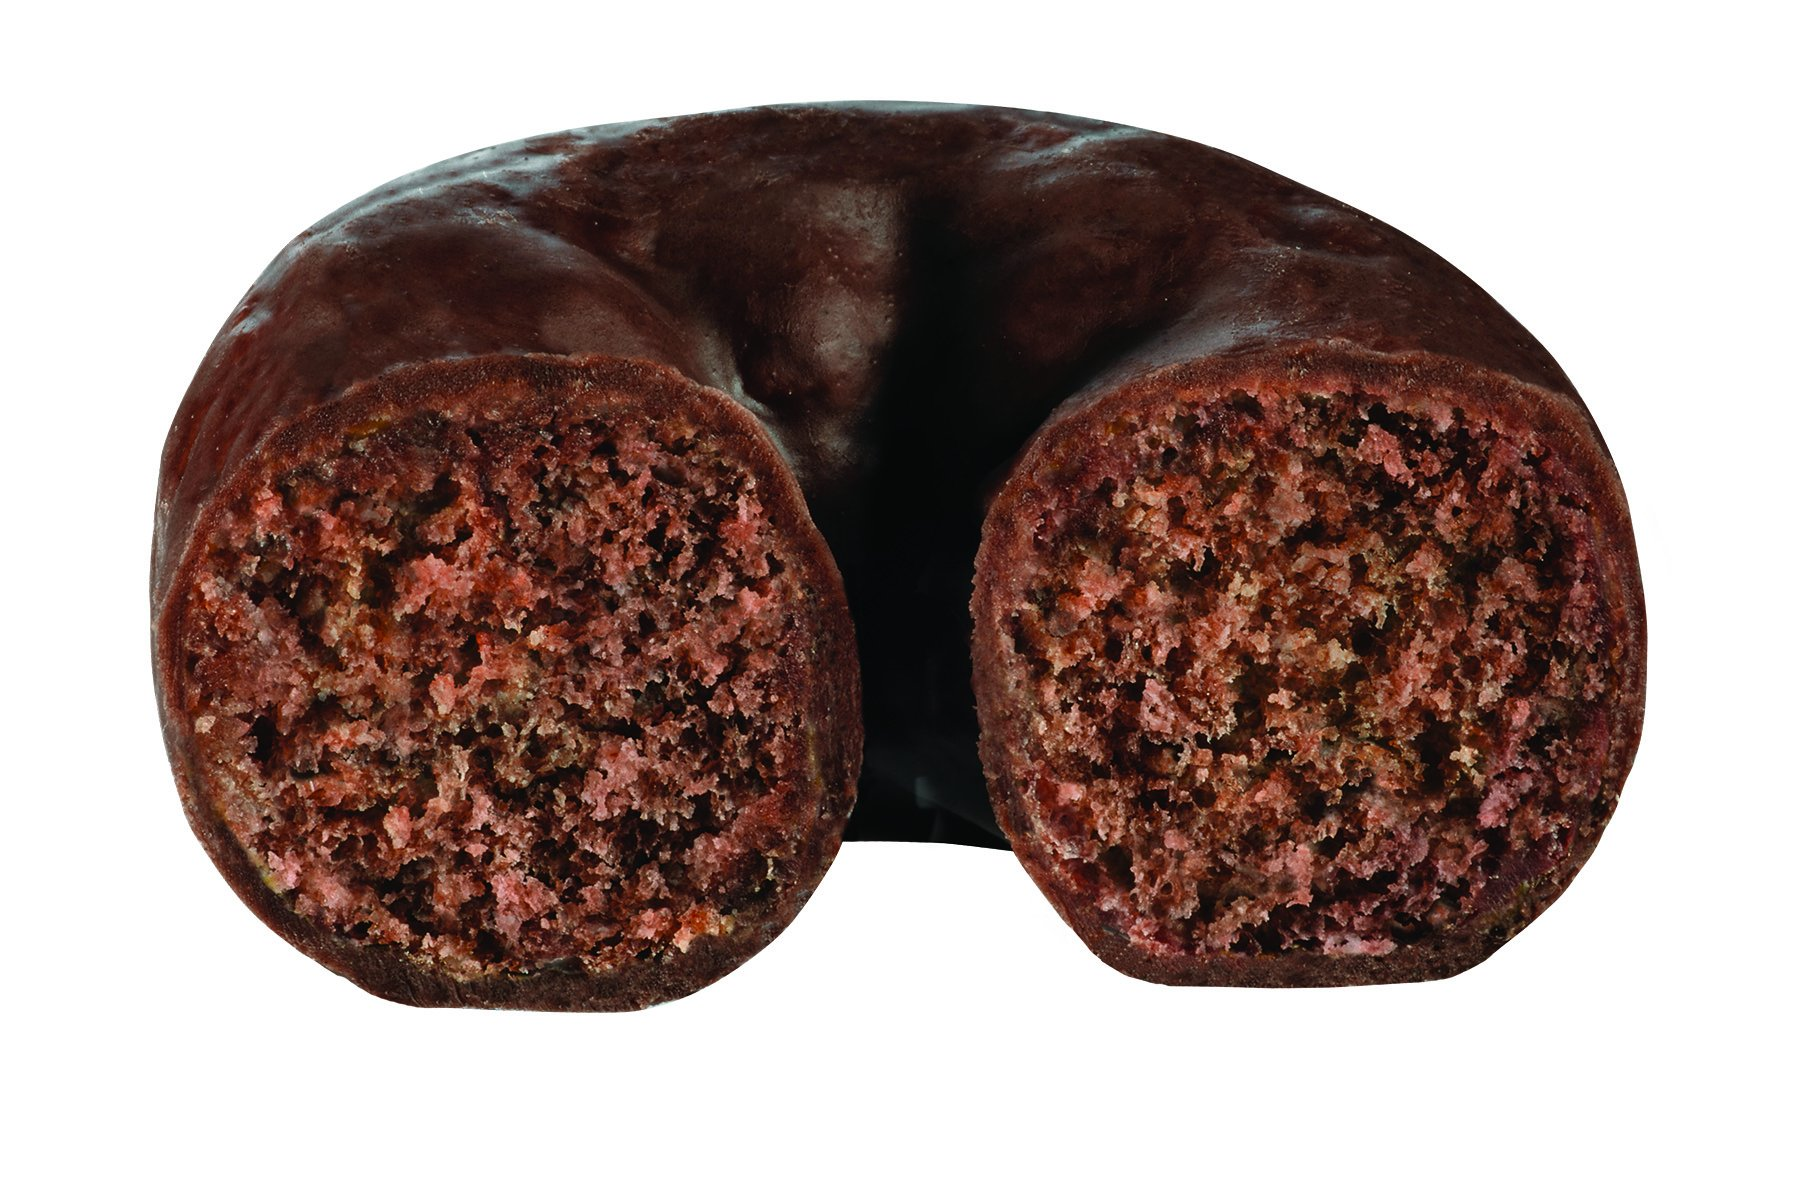 Hostess Donettes Mini Donuts, Double Chocolate, 3 Ounce, 10 Count by Hostess (Image #5)